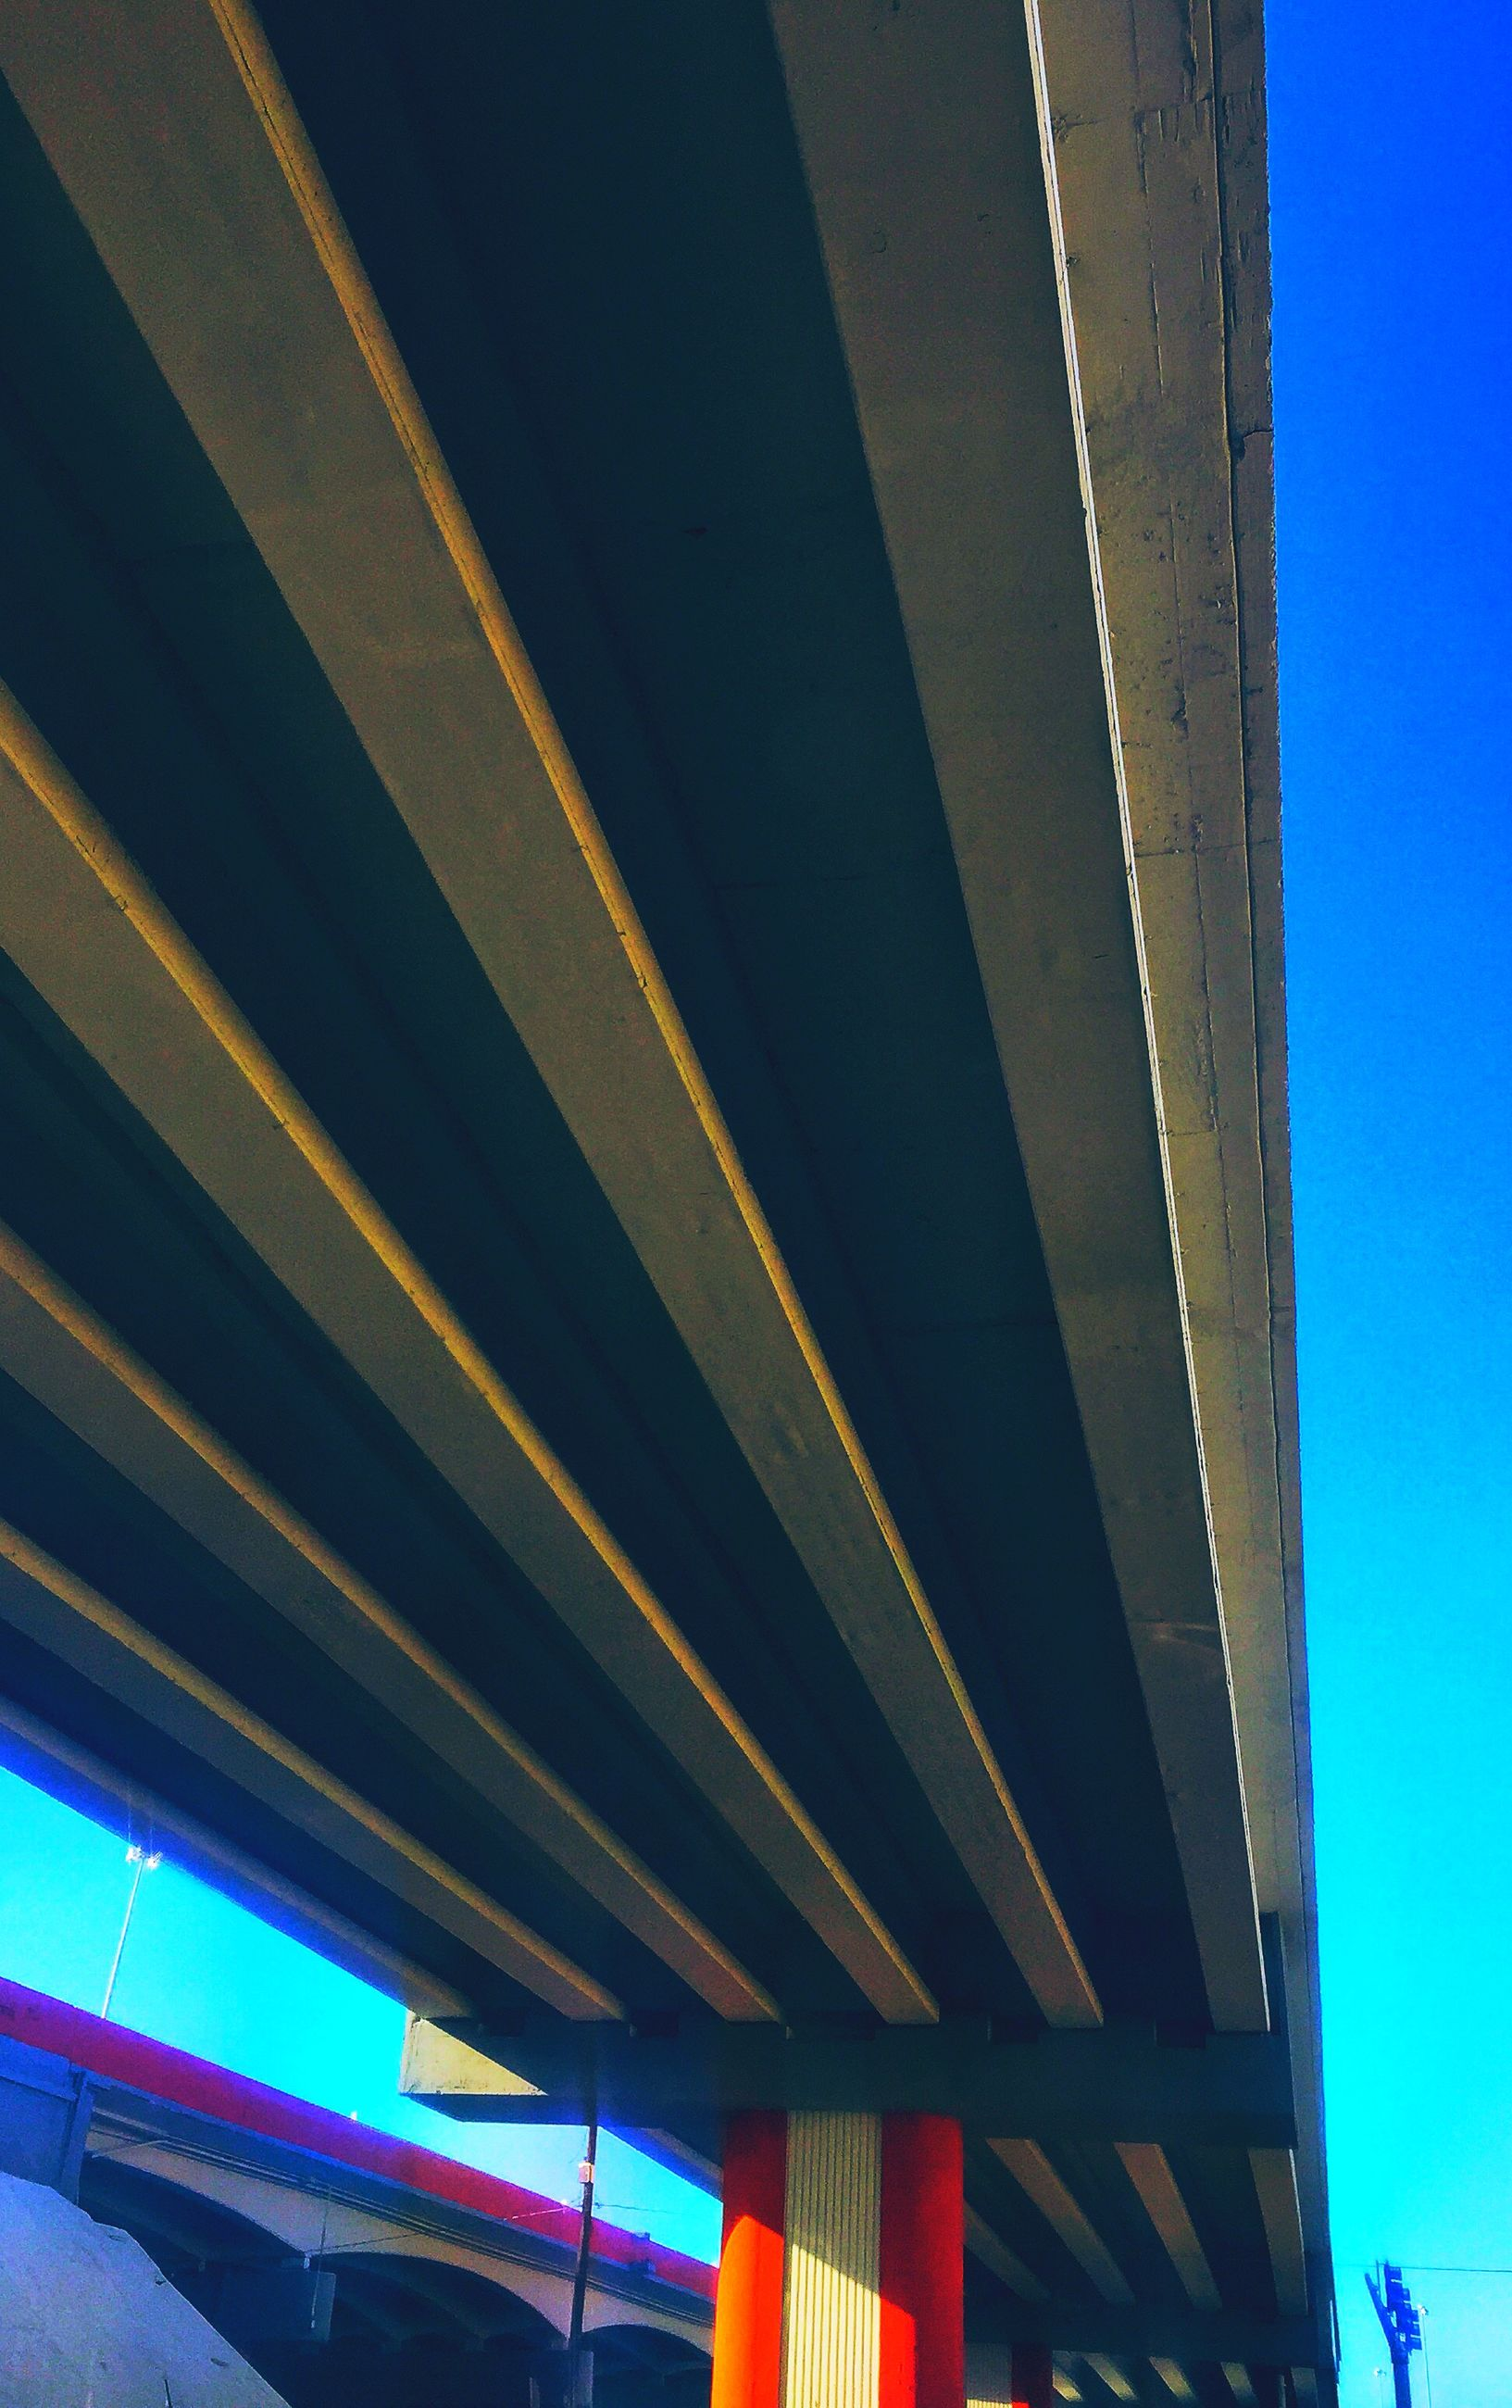 low angle view, built structure, architecture, blue, clear sky, connection, bridge - man made structure, illuminated, engineering, architectural column, copy space, building exterior, no people, outdoors, support, transportation, ceiling, sky, column, bridge